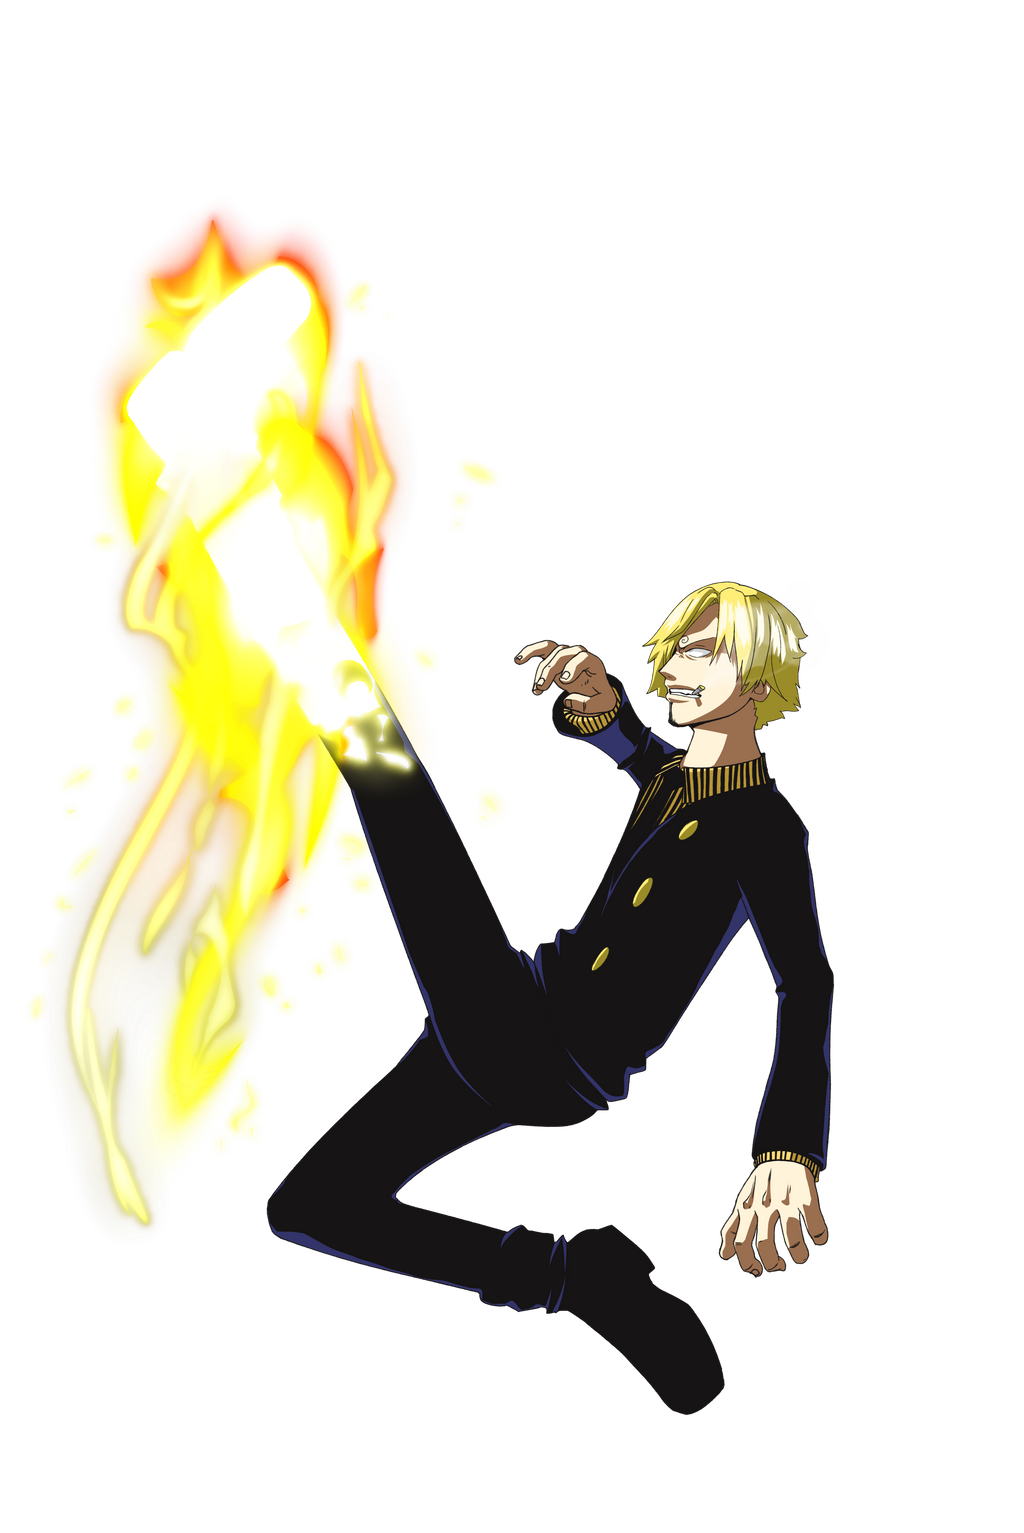 OP Sanji 2 by xenocracy on DeviantArt